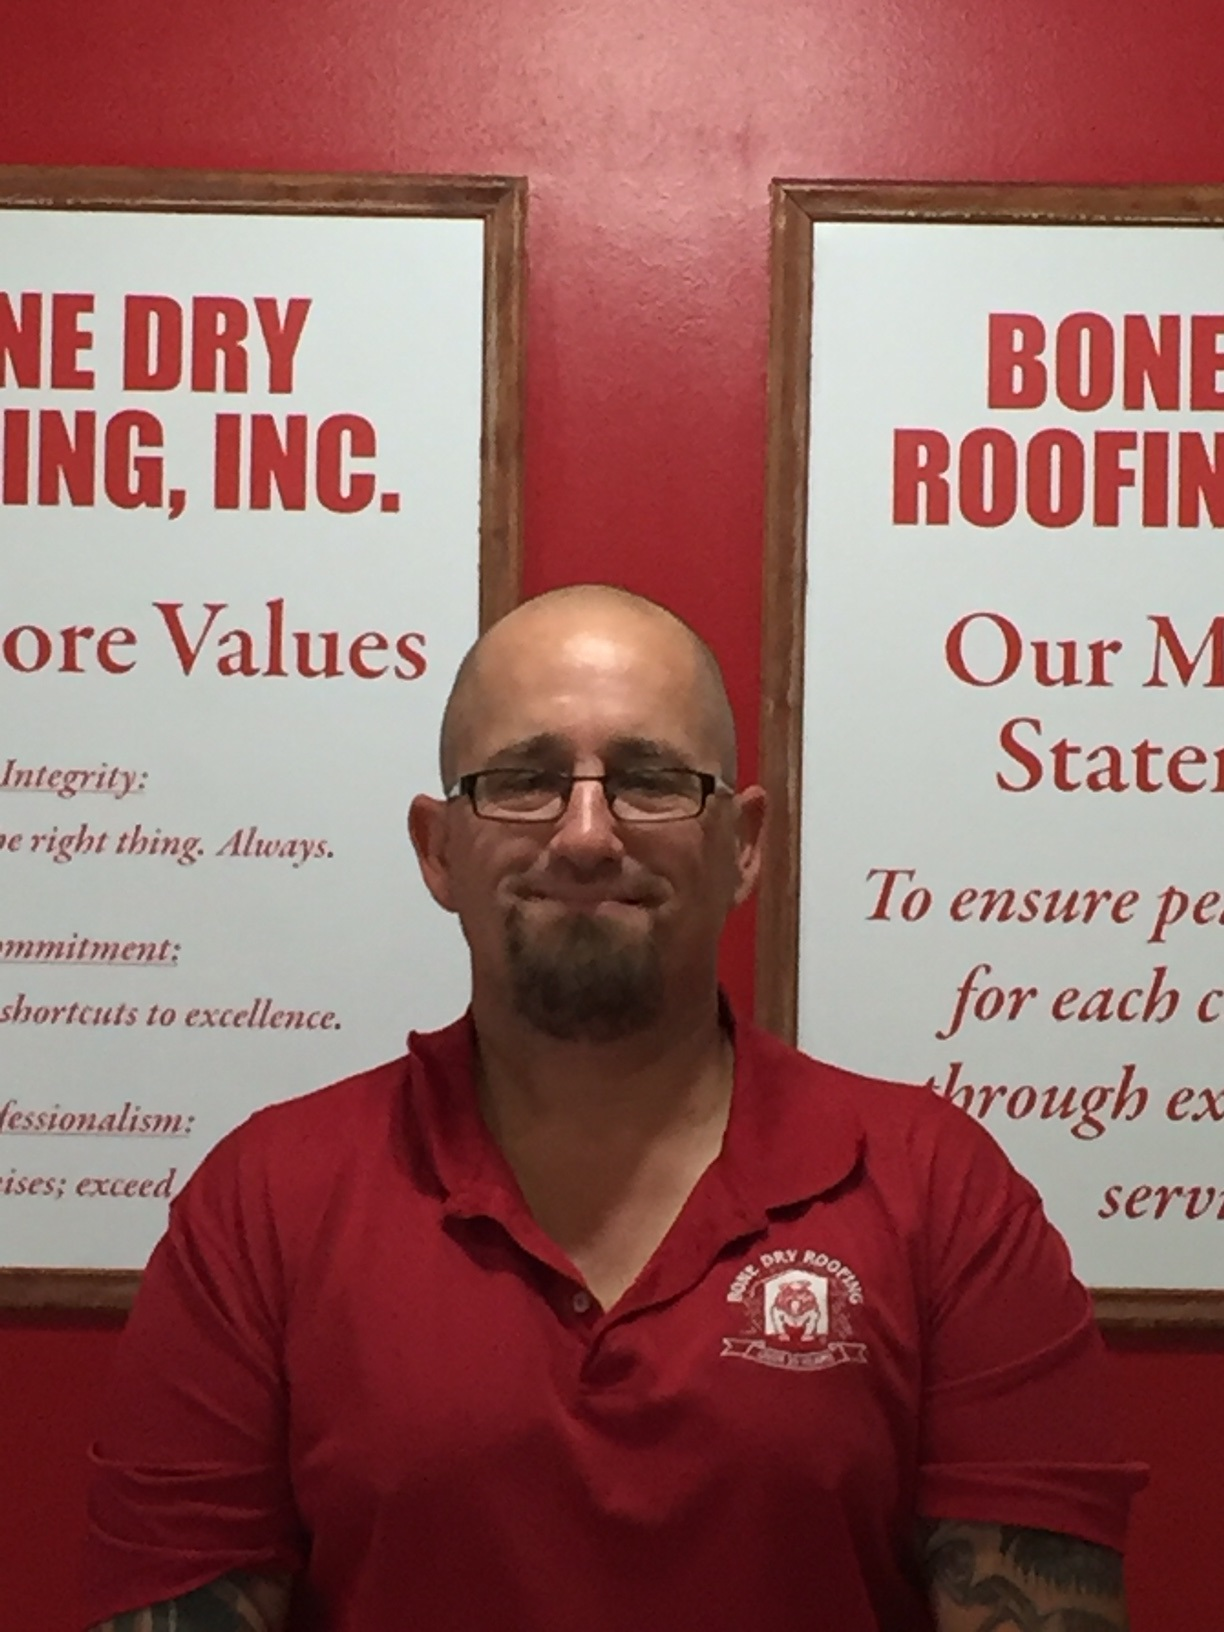 Steve Klosinski is the General Manager of Bone Dry Roofing